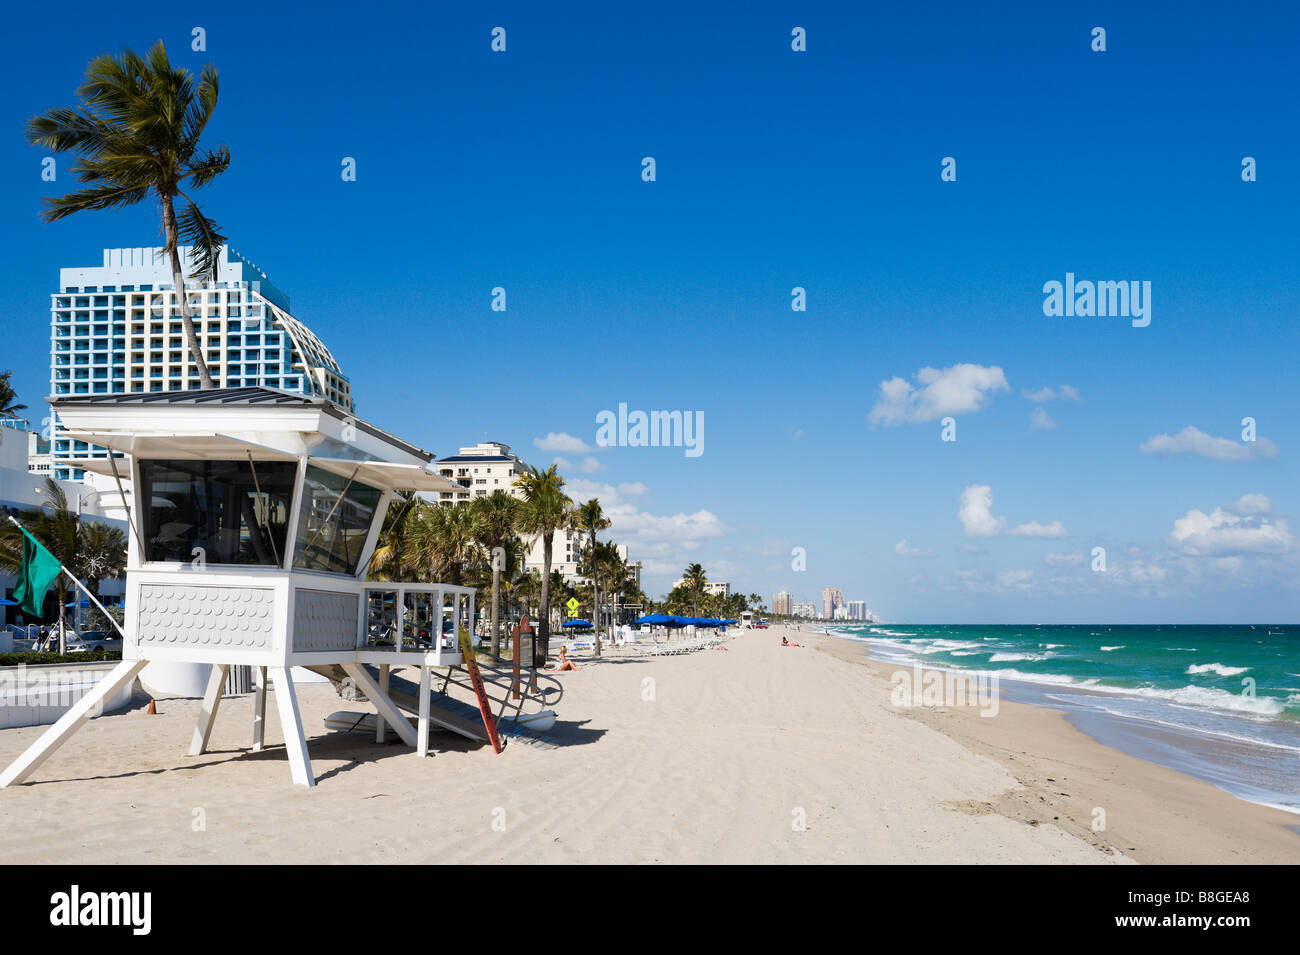 Lifeguard Hut on Fort Lauderdale Beach with the Trump Hotel behind, Gold Coast, Florida, USA Stock Photo